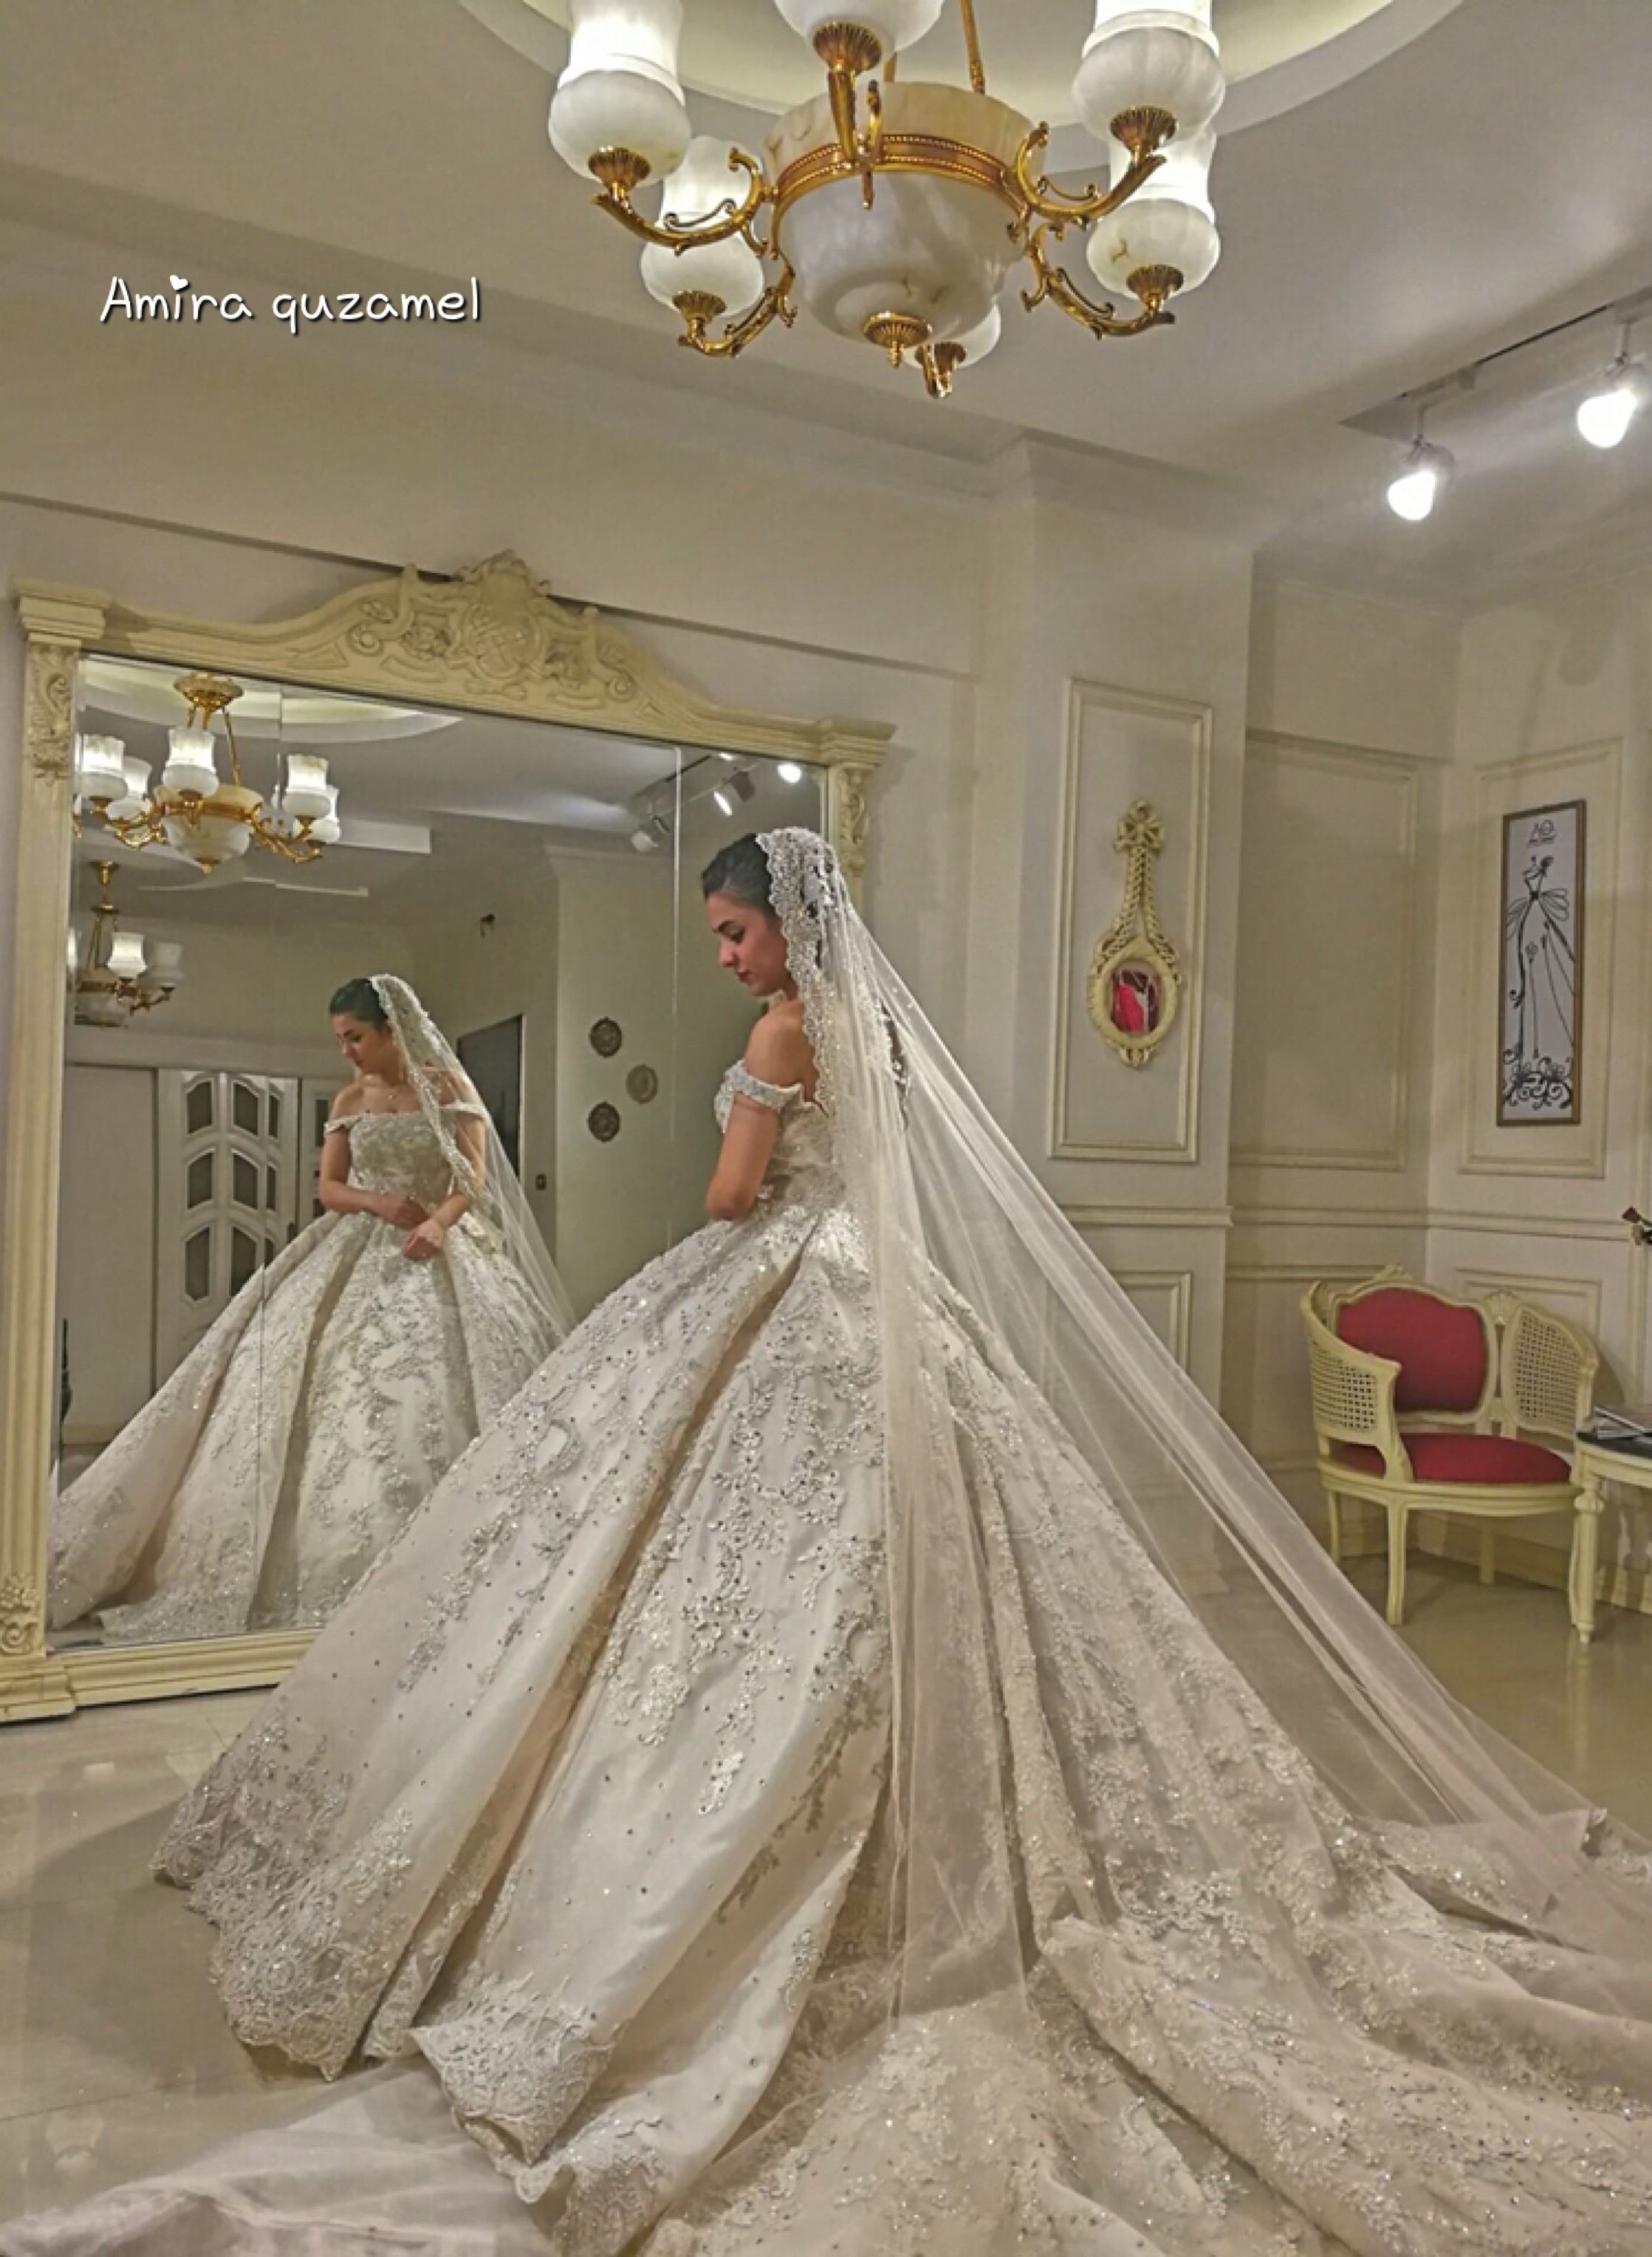 Ball gown wedding dress with bling  Pin by Paloma Barragan on wedding dresses  Pinterest  Wedding